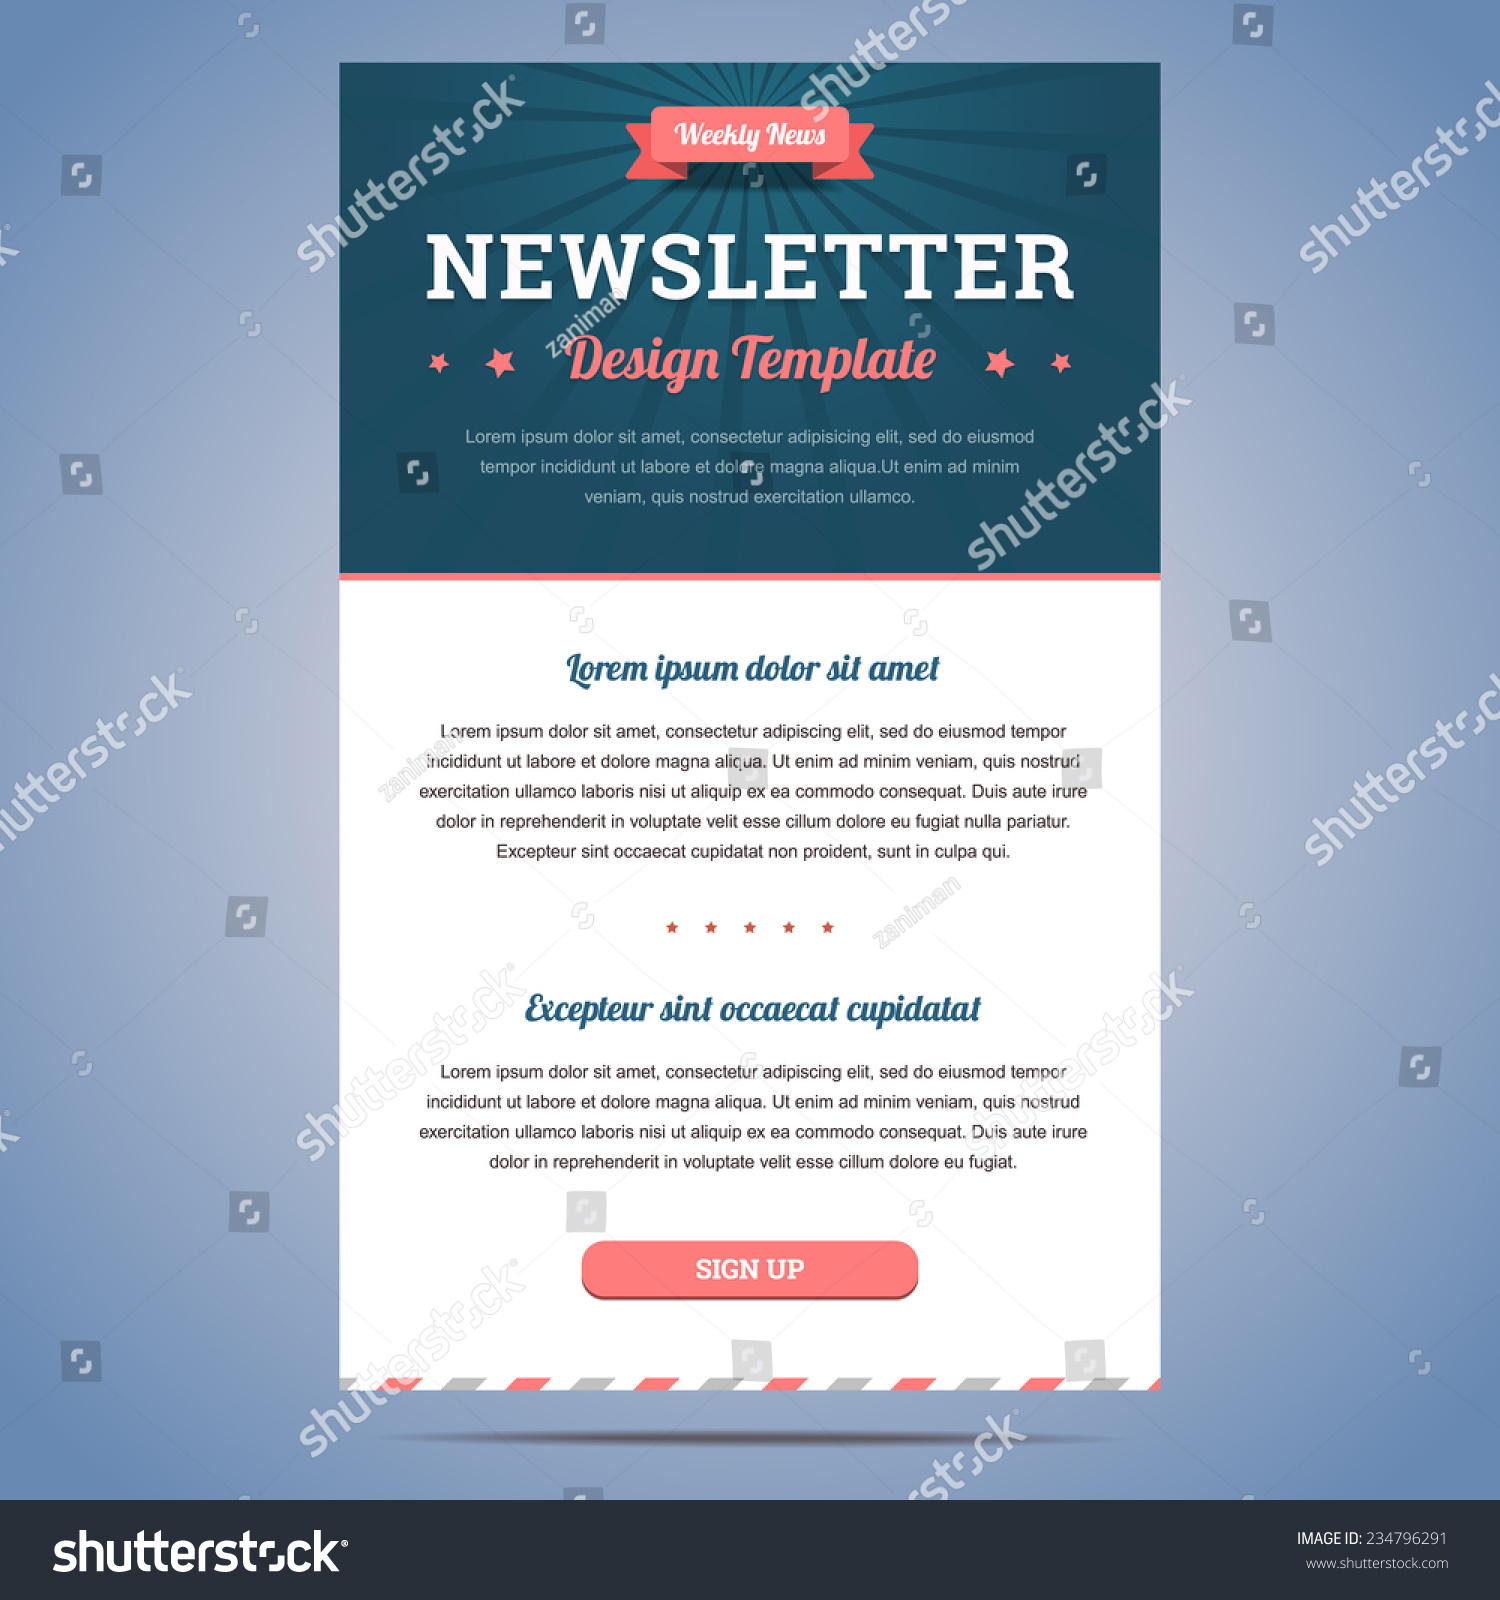 Latest News Header: Newsletter Design Template For Weekly Company News With